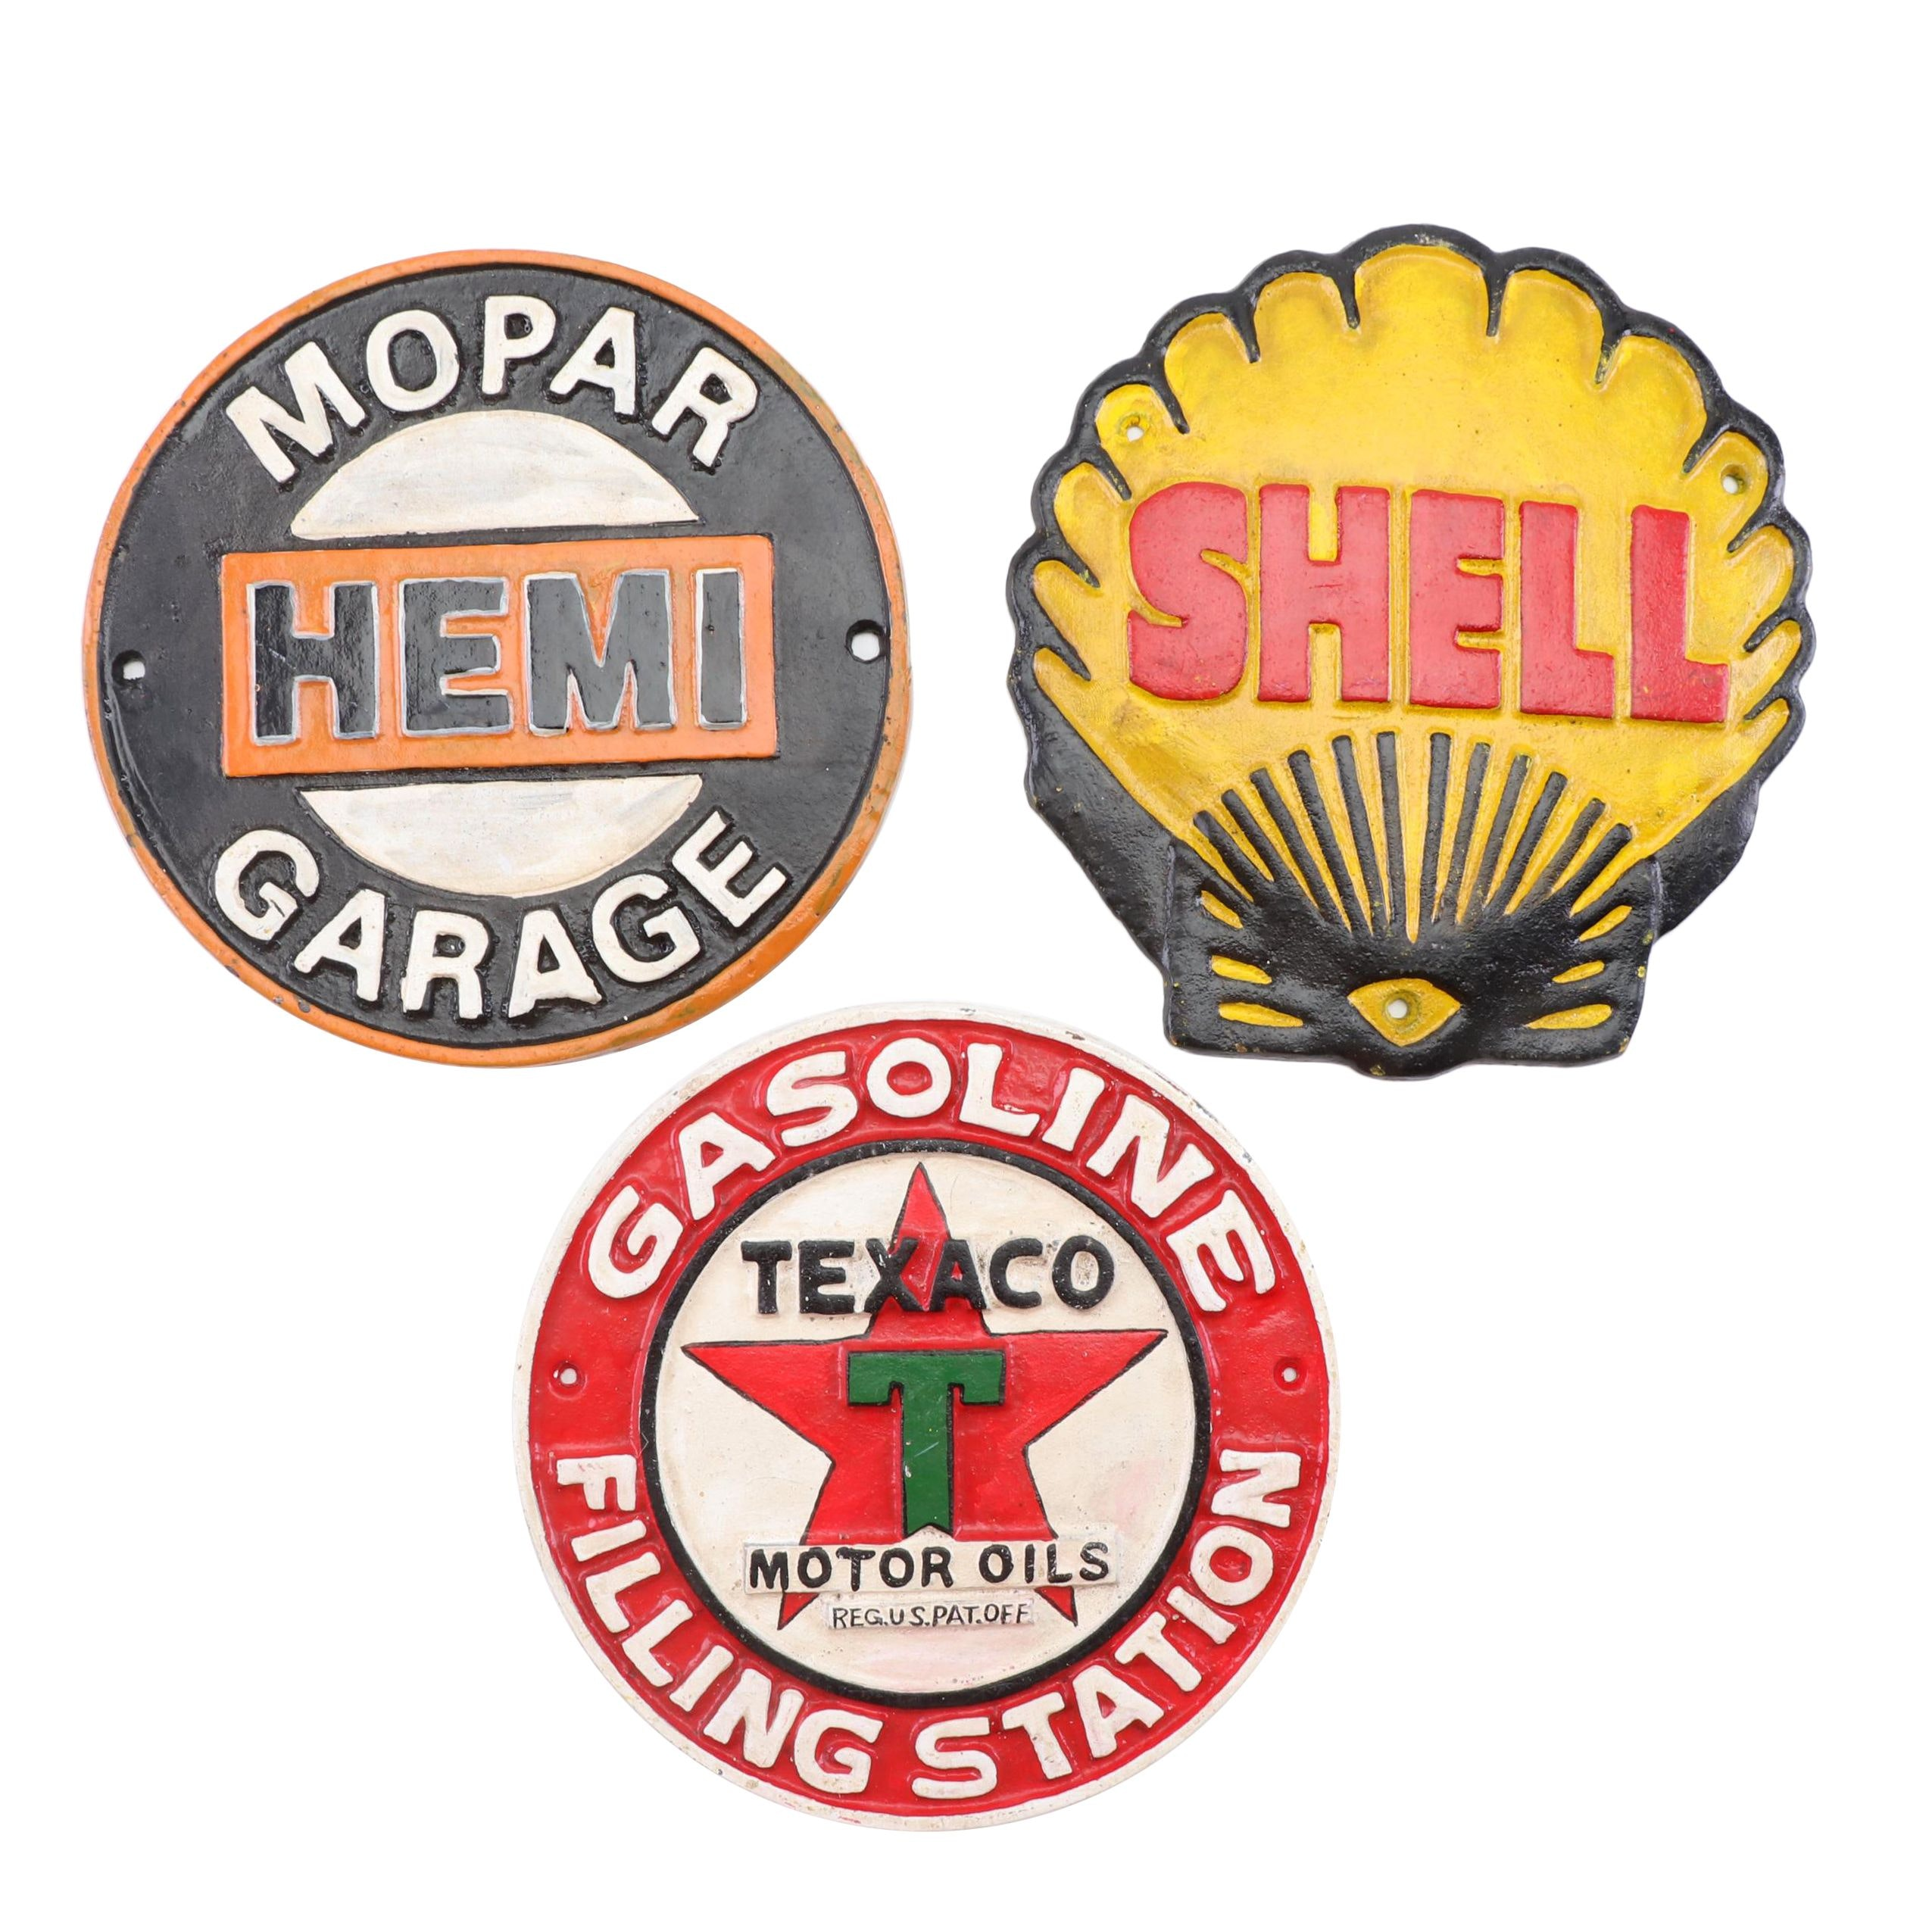 Cast Iron Reproduction Texaco, Shell, and Hemi Garage Signs